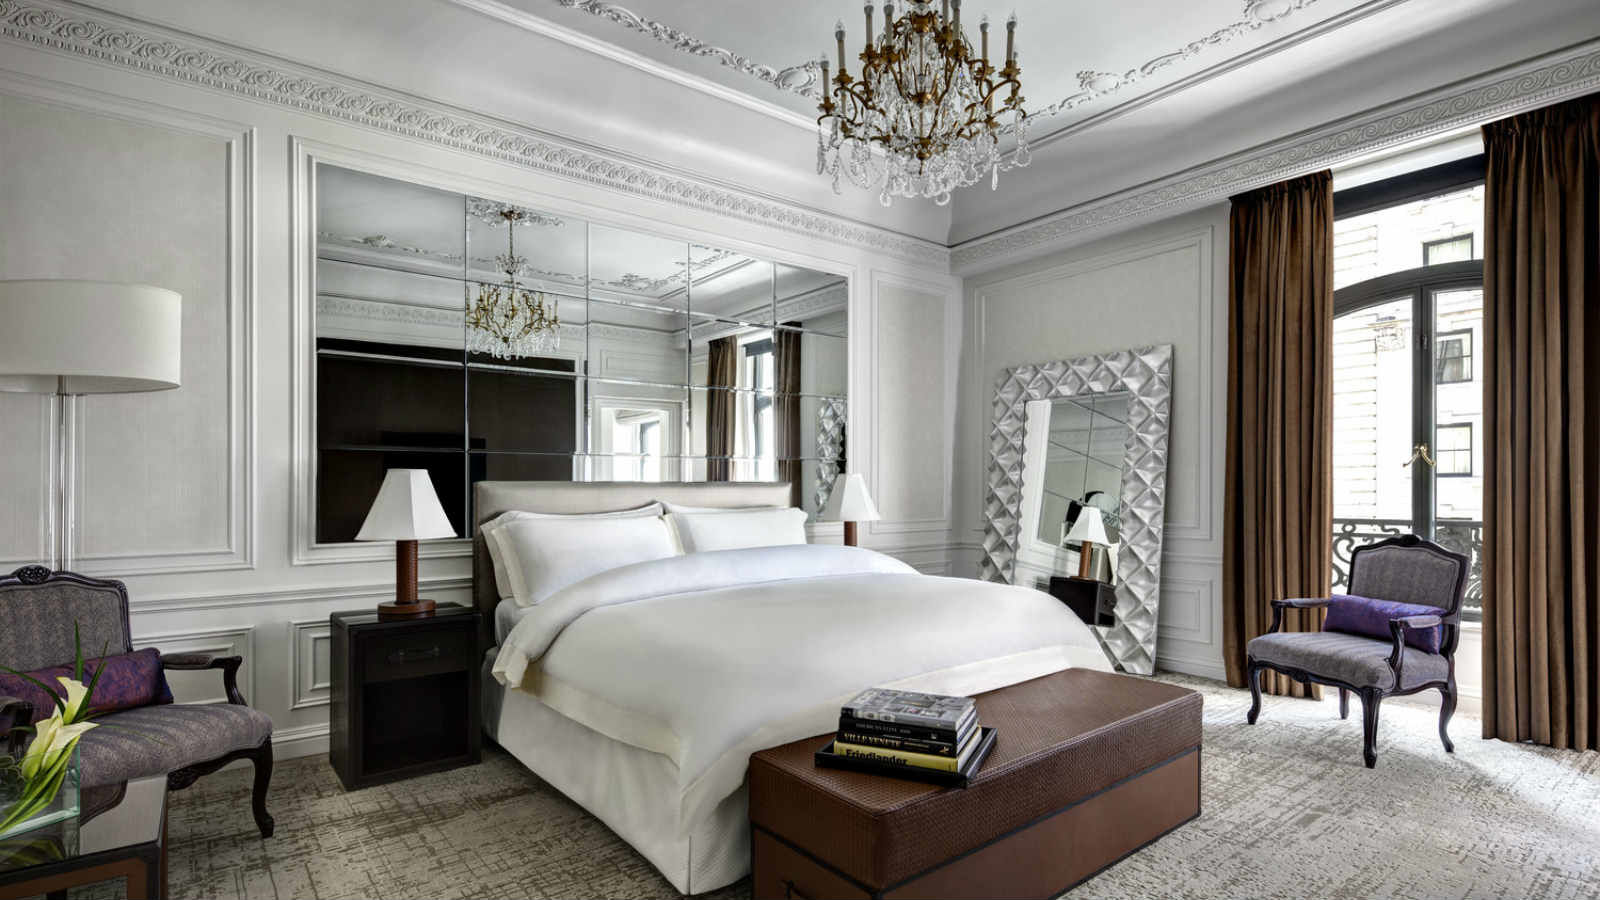 Milano Suite | St. Regis New York